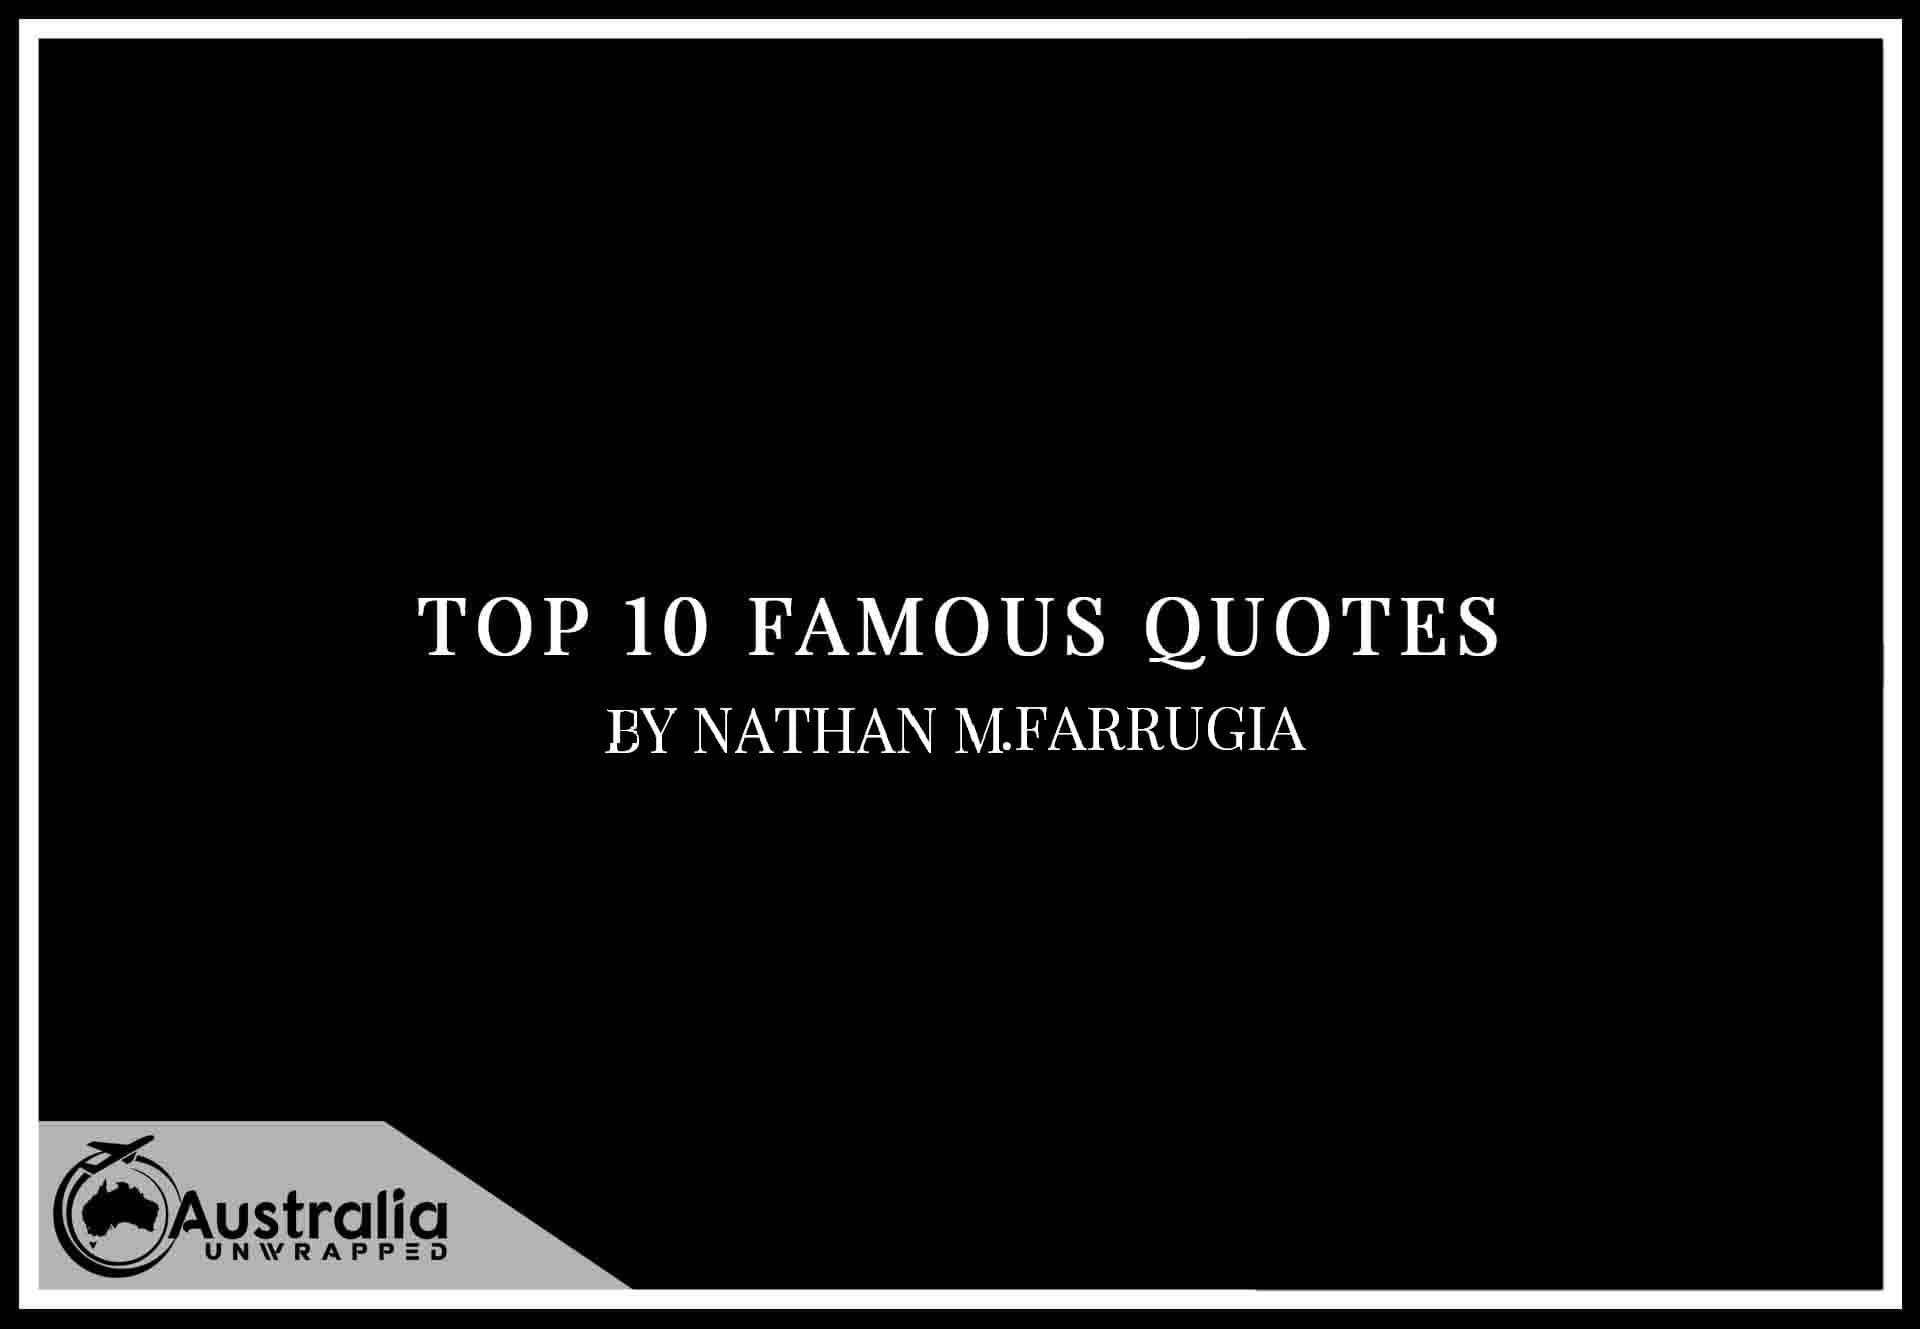 Top 10 Famous Quotes by Author Nathan M. Farrugia